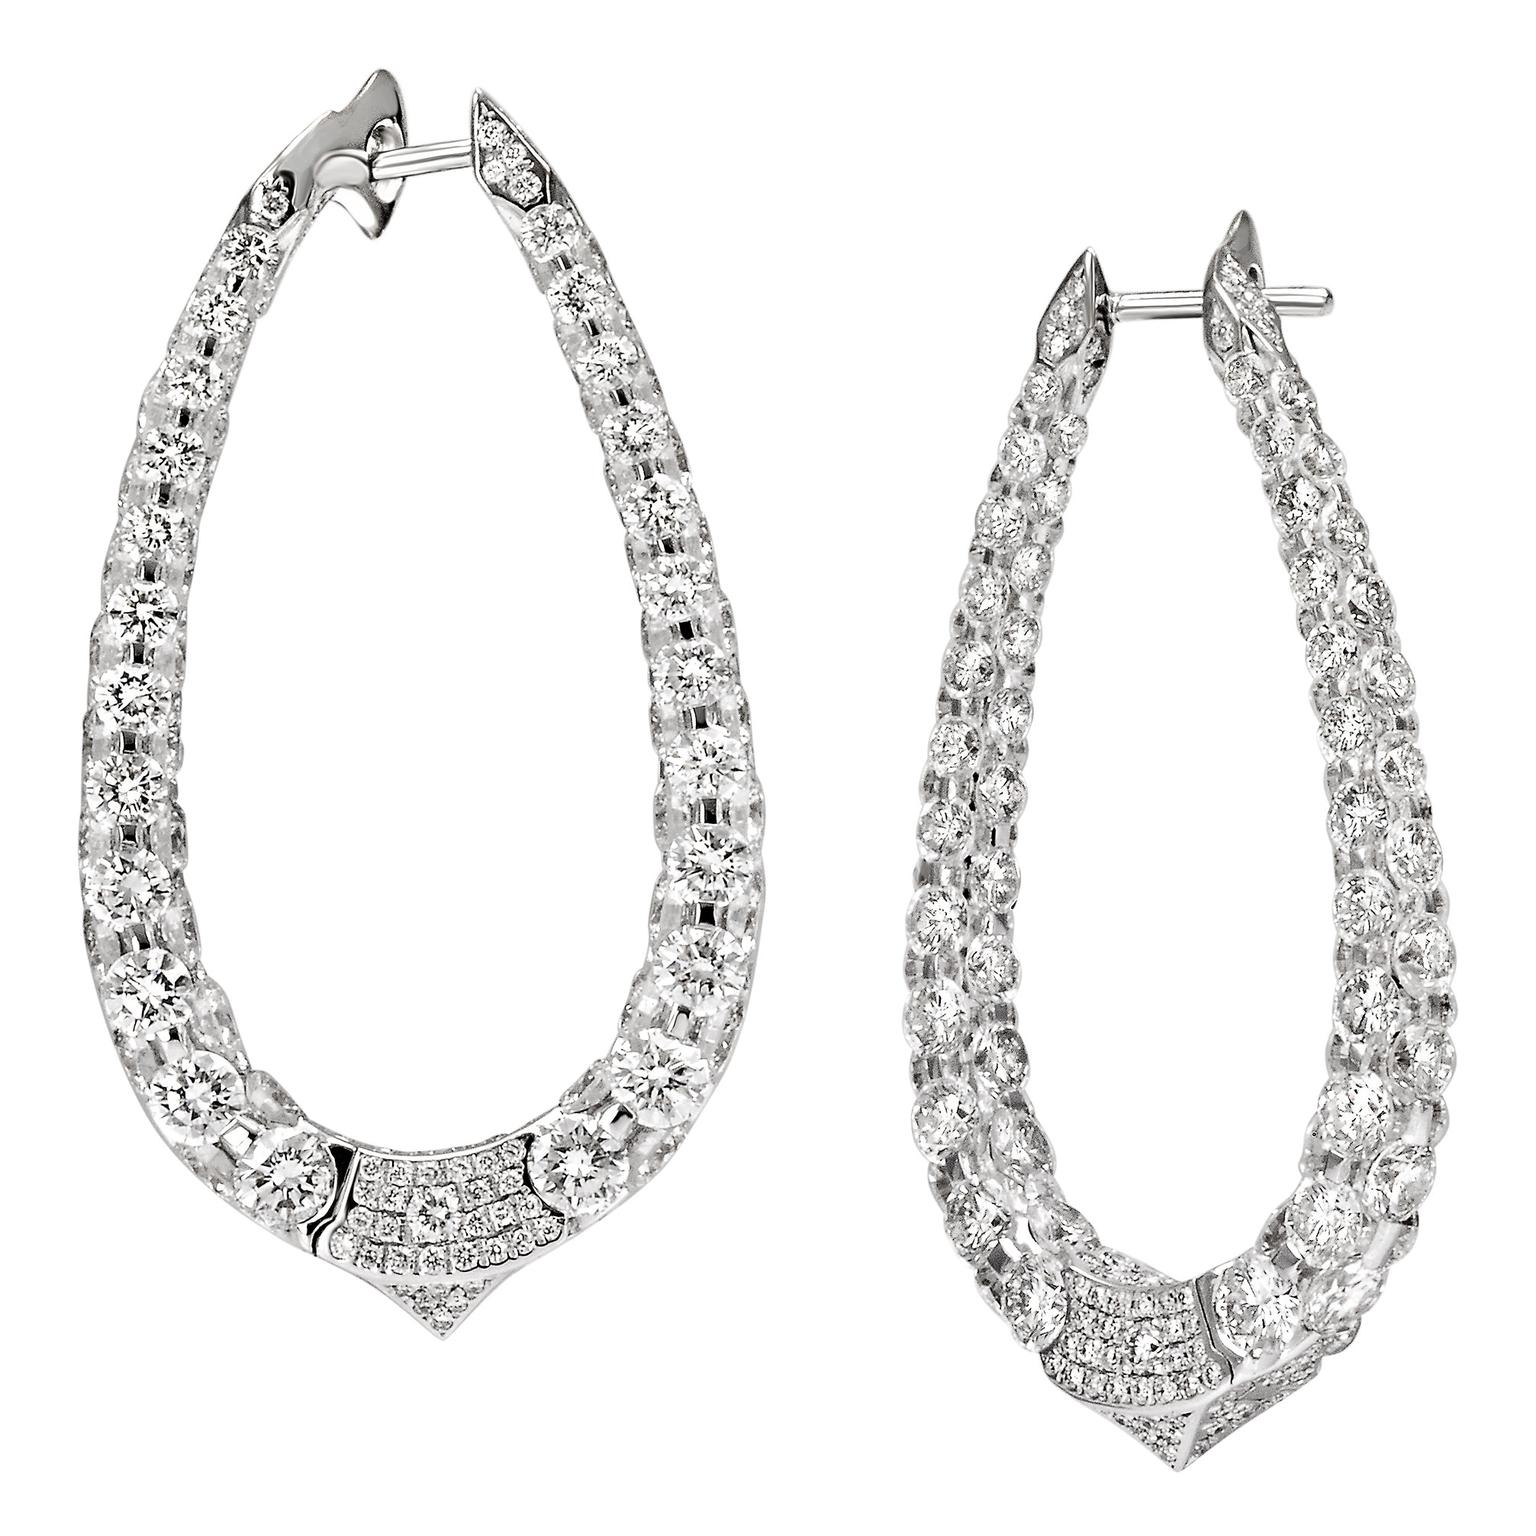 Boghossian Les Merveilles Creole hoop diamond earrings